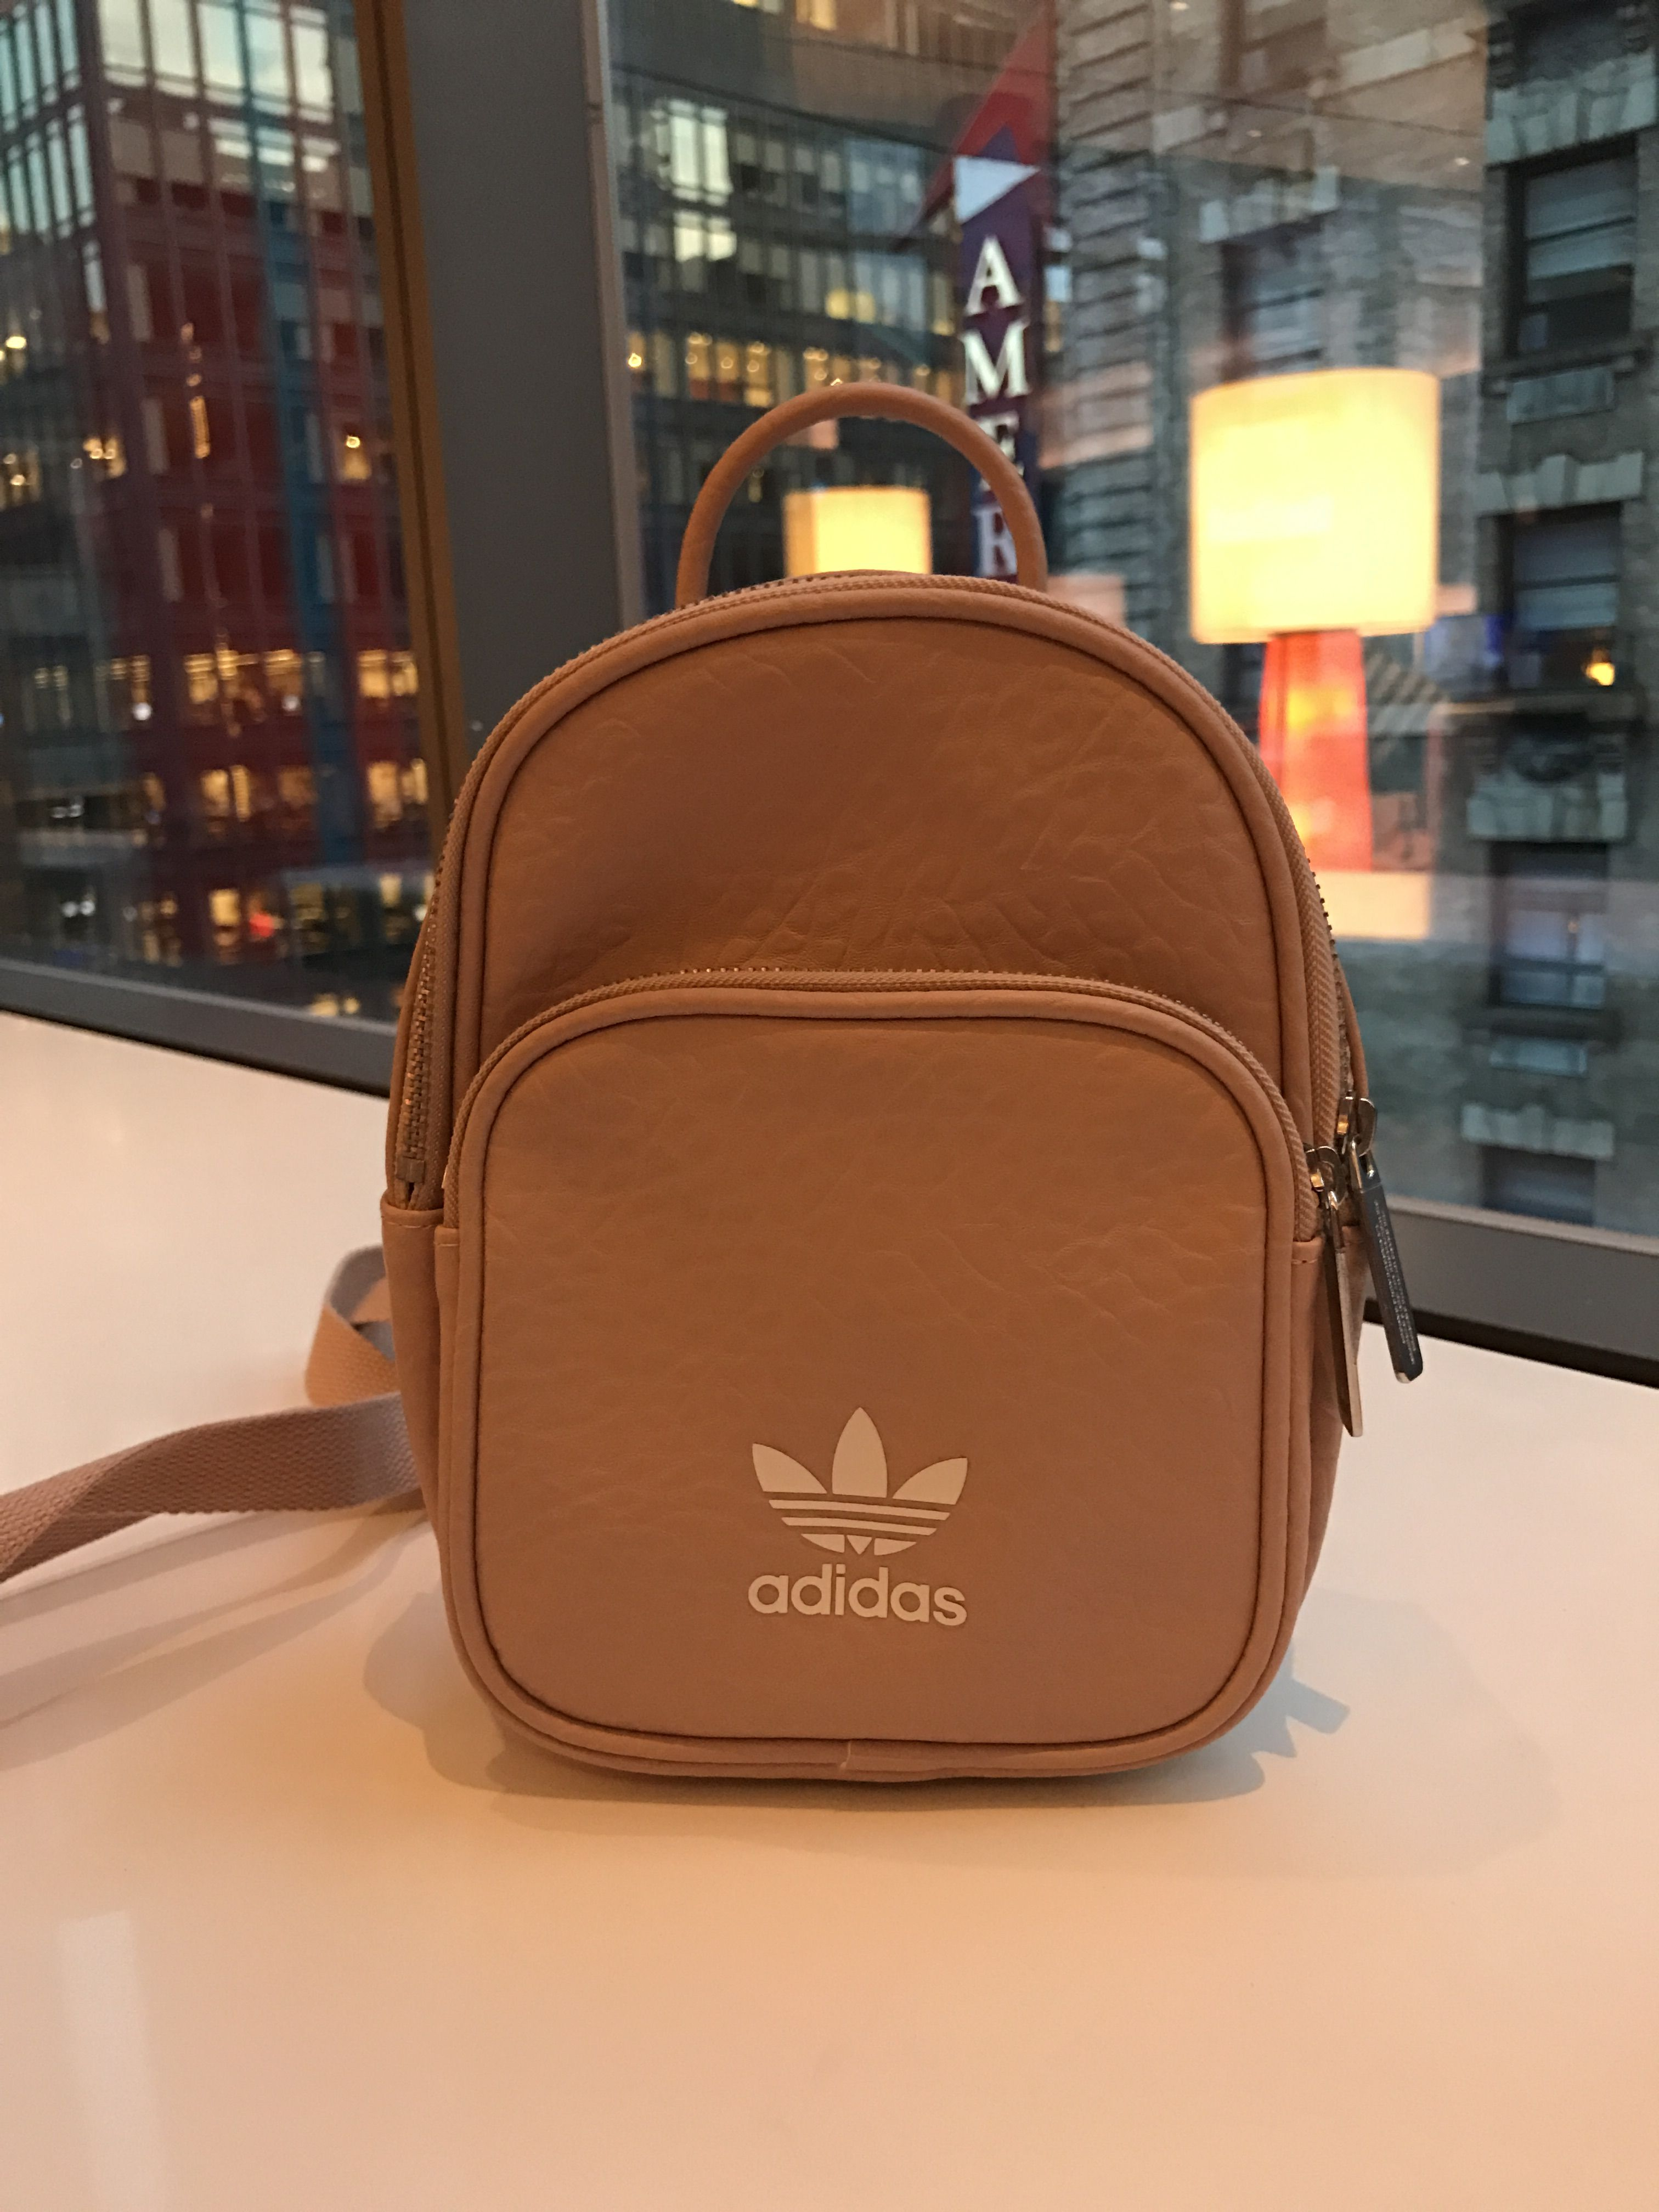 8b0acb16b07 Adidas mini backpack in nude color | Fashion adidas in 2019 | Bags ...